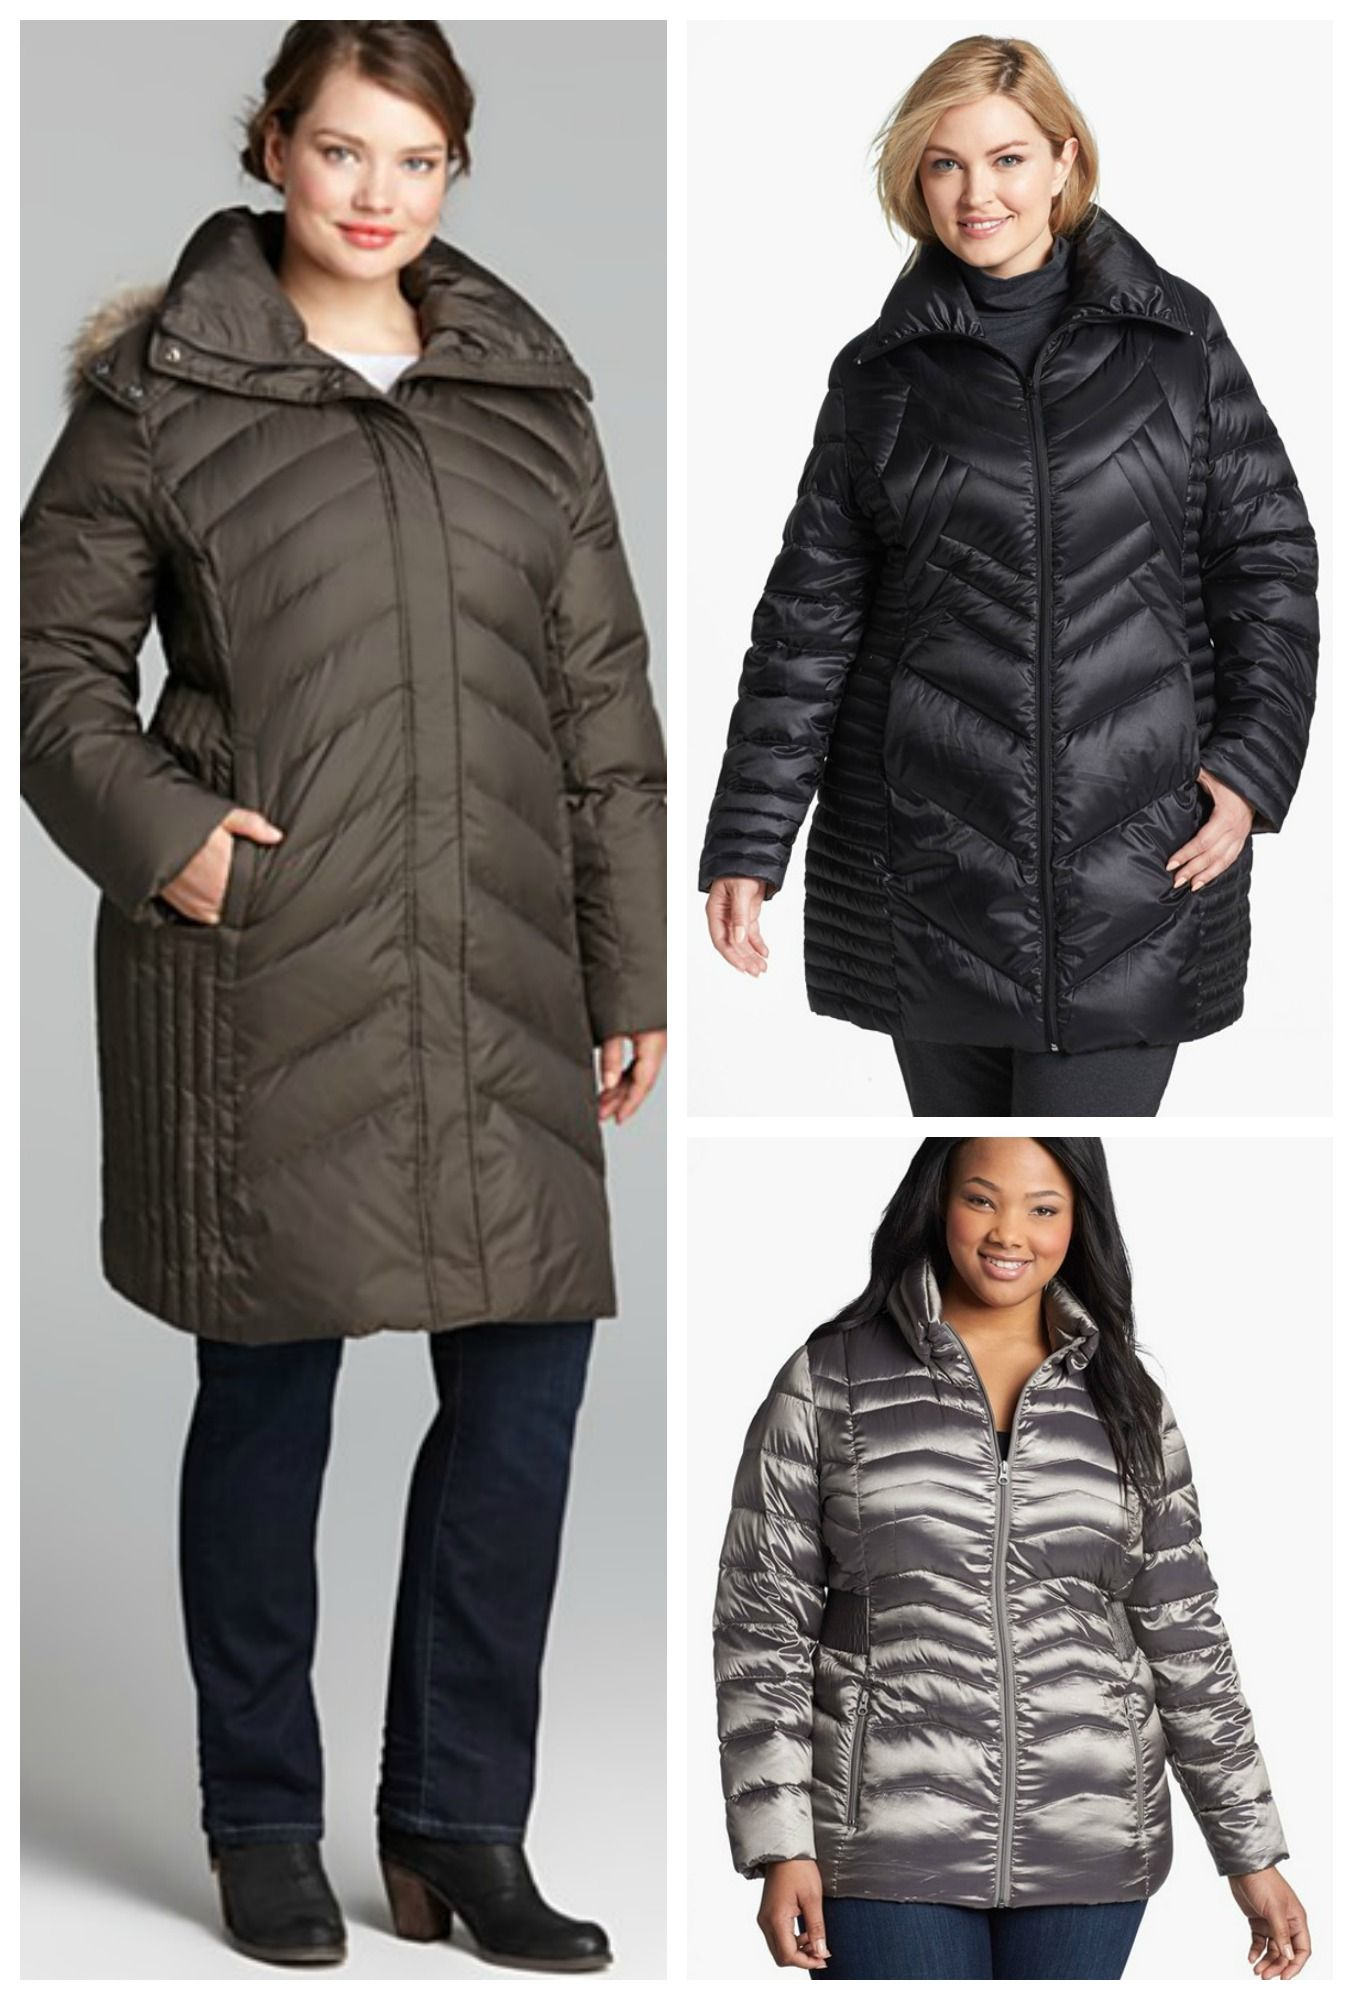 721c9723eb1 Your Fall Plus Size Coats Fit and Style Guide. plus size puffer coats -  Many plus sized women shy away thinking this style will only add to their  curves